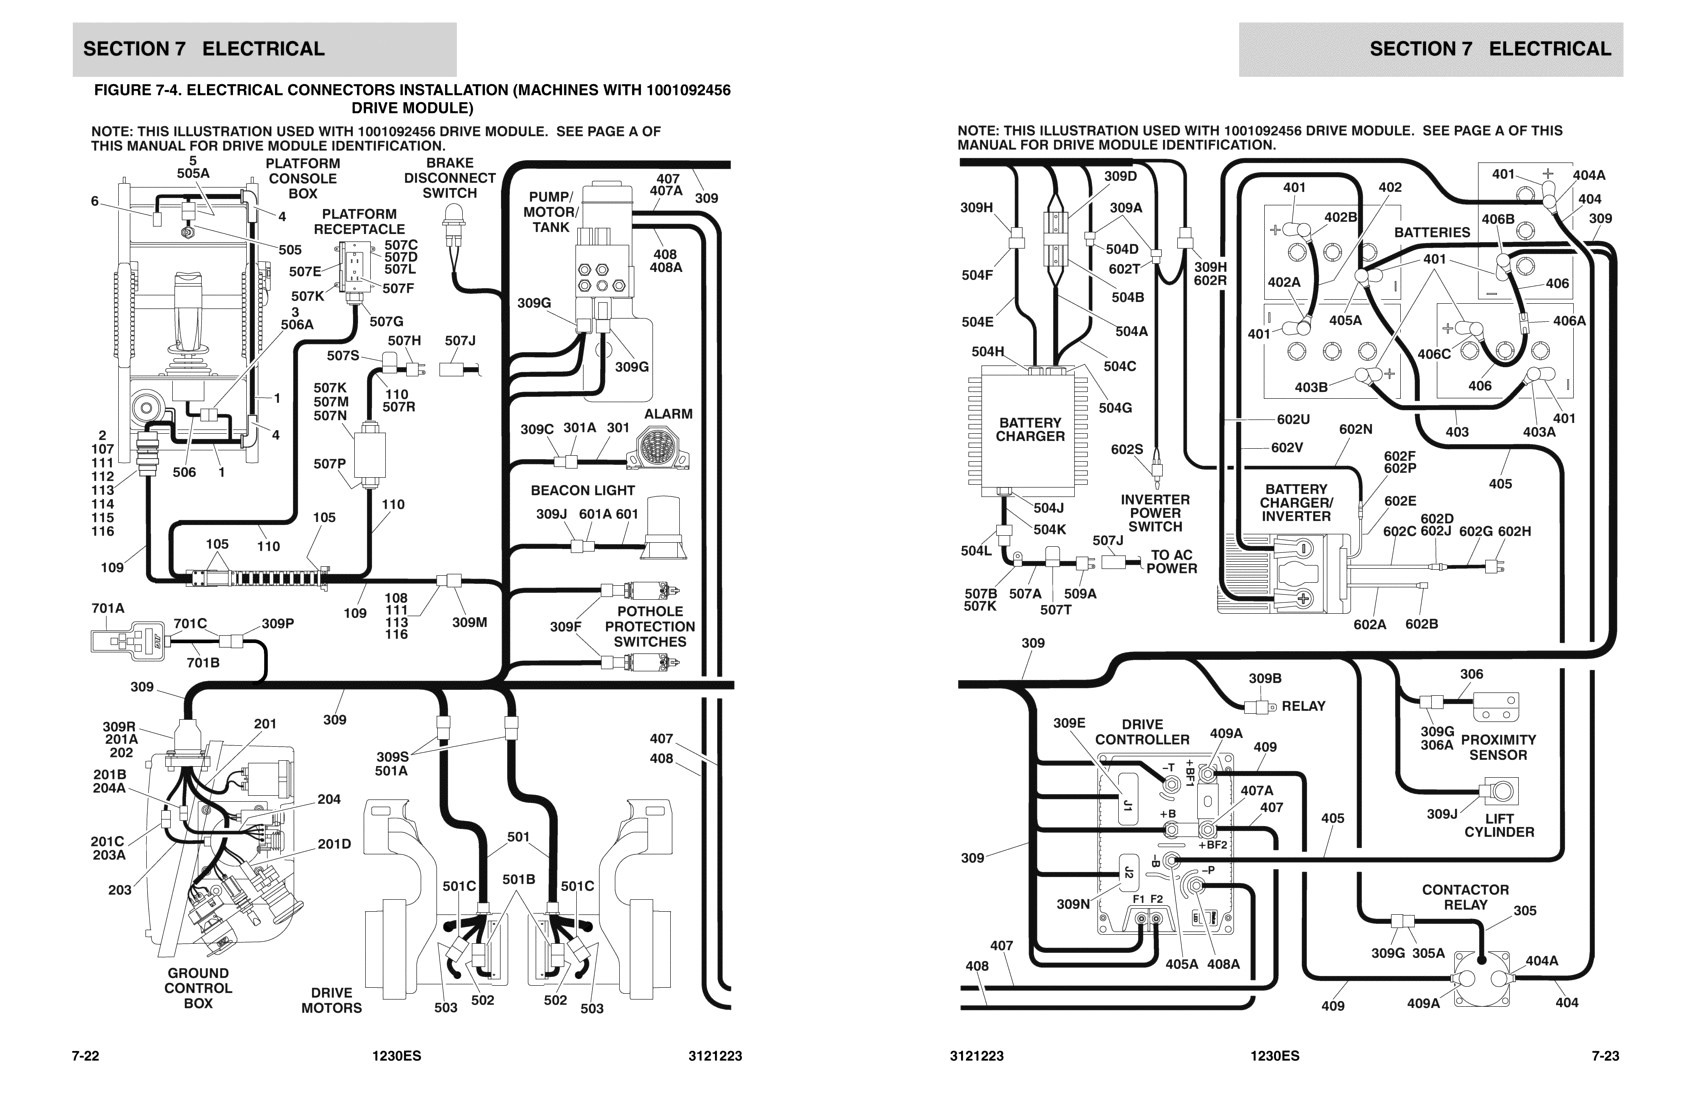 upright lift wiring diagram